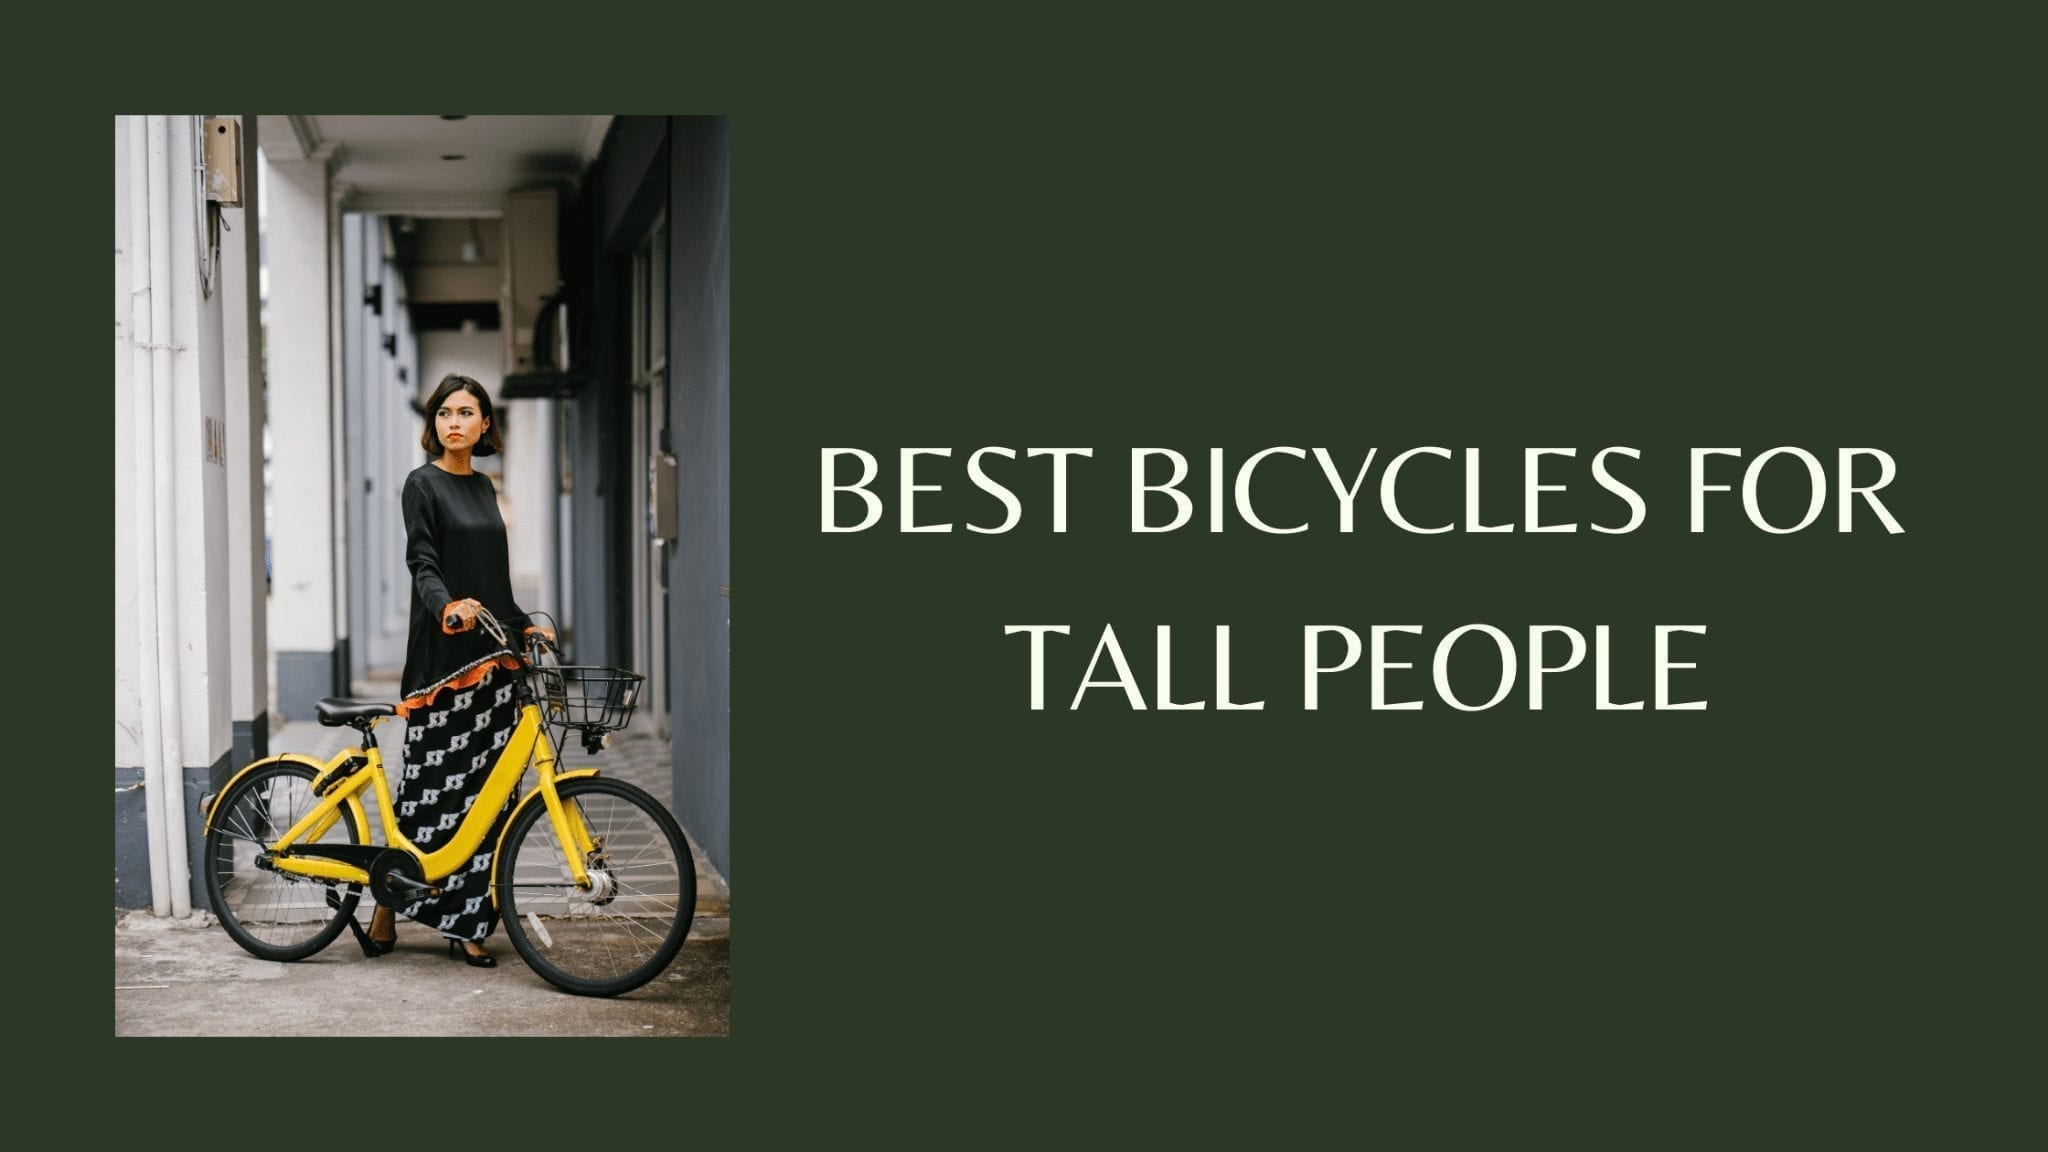 Best Bicycles for Tall People